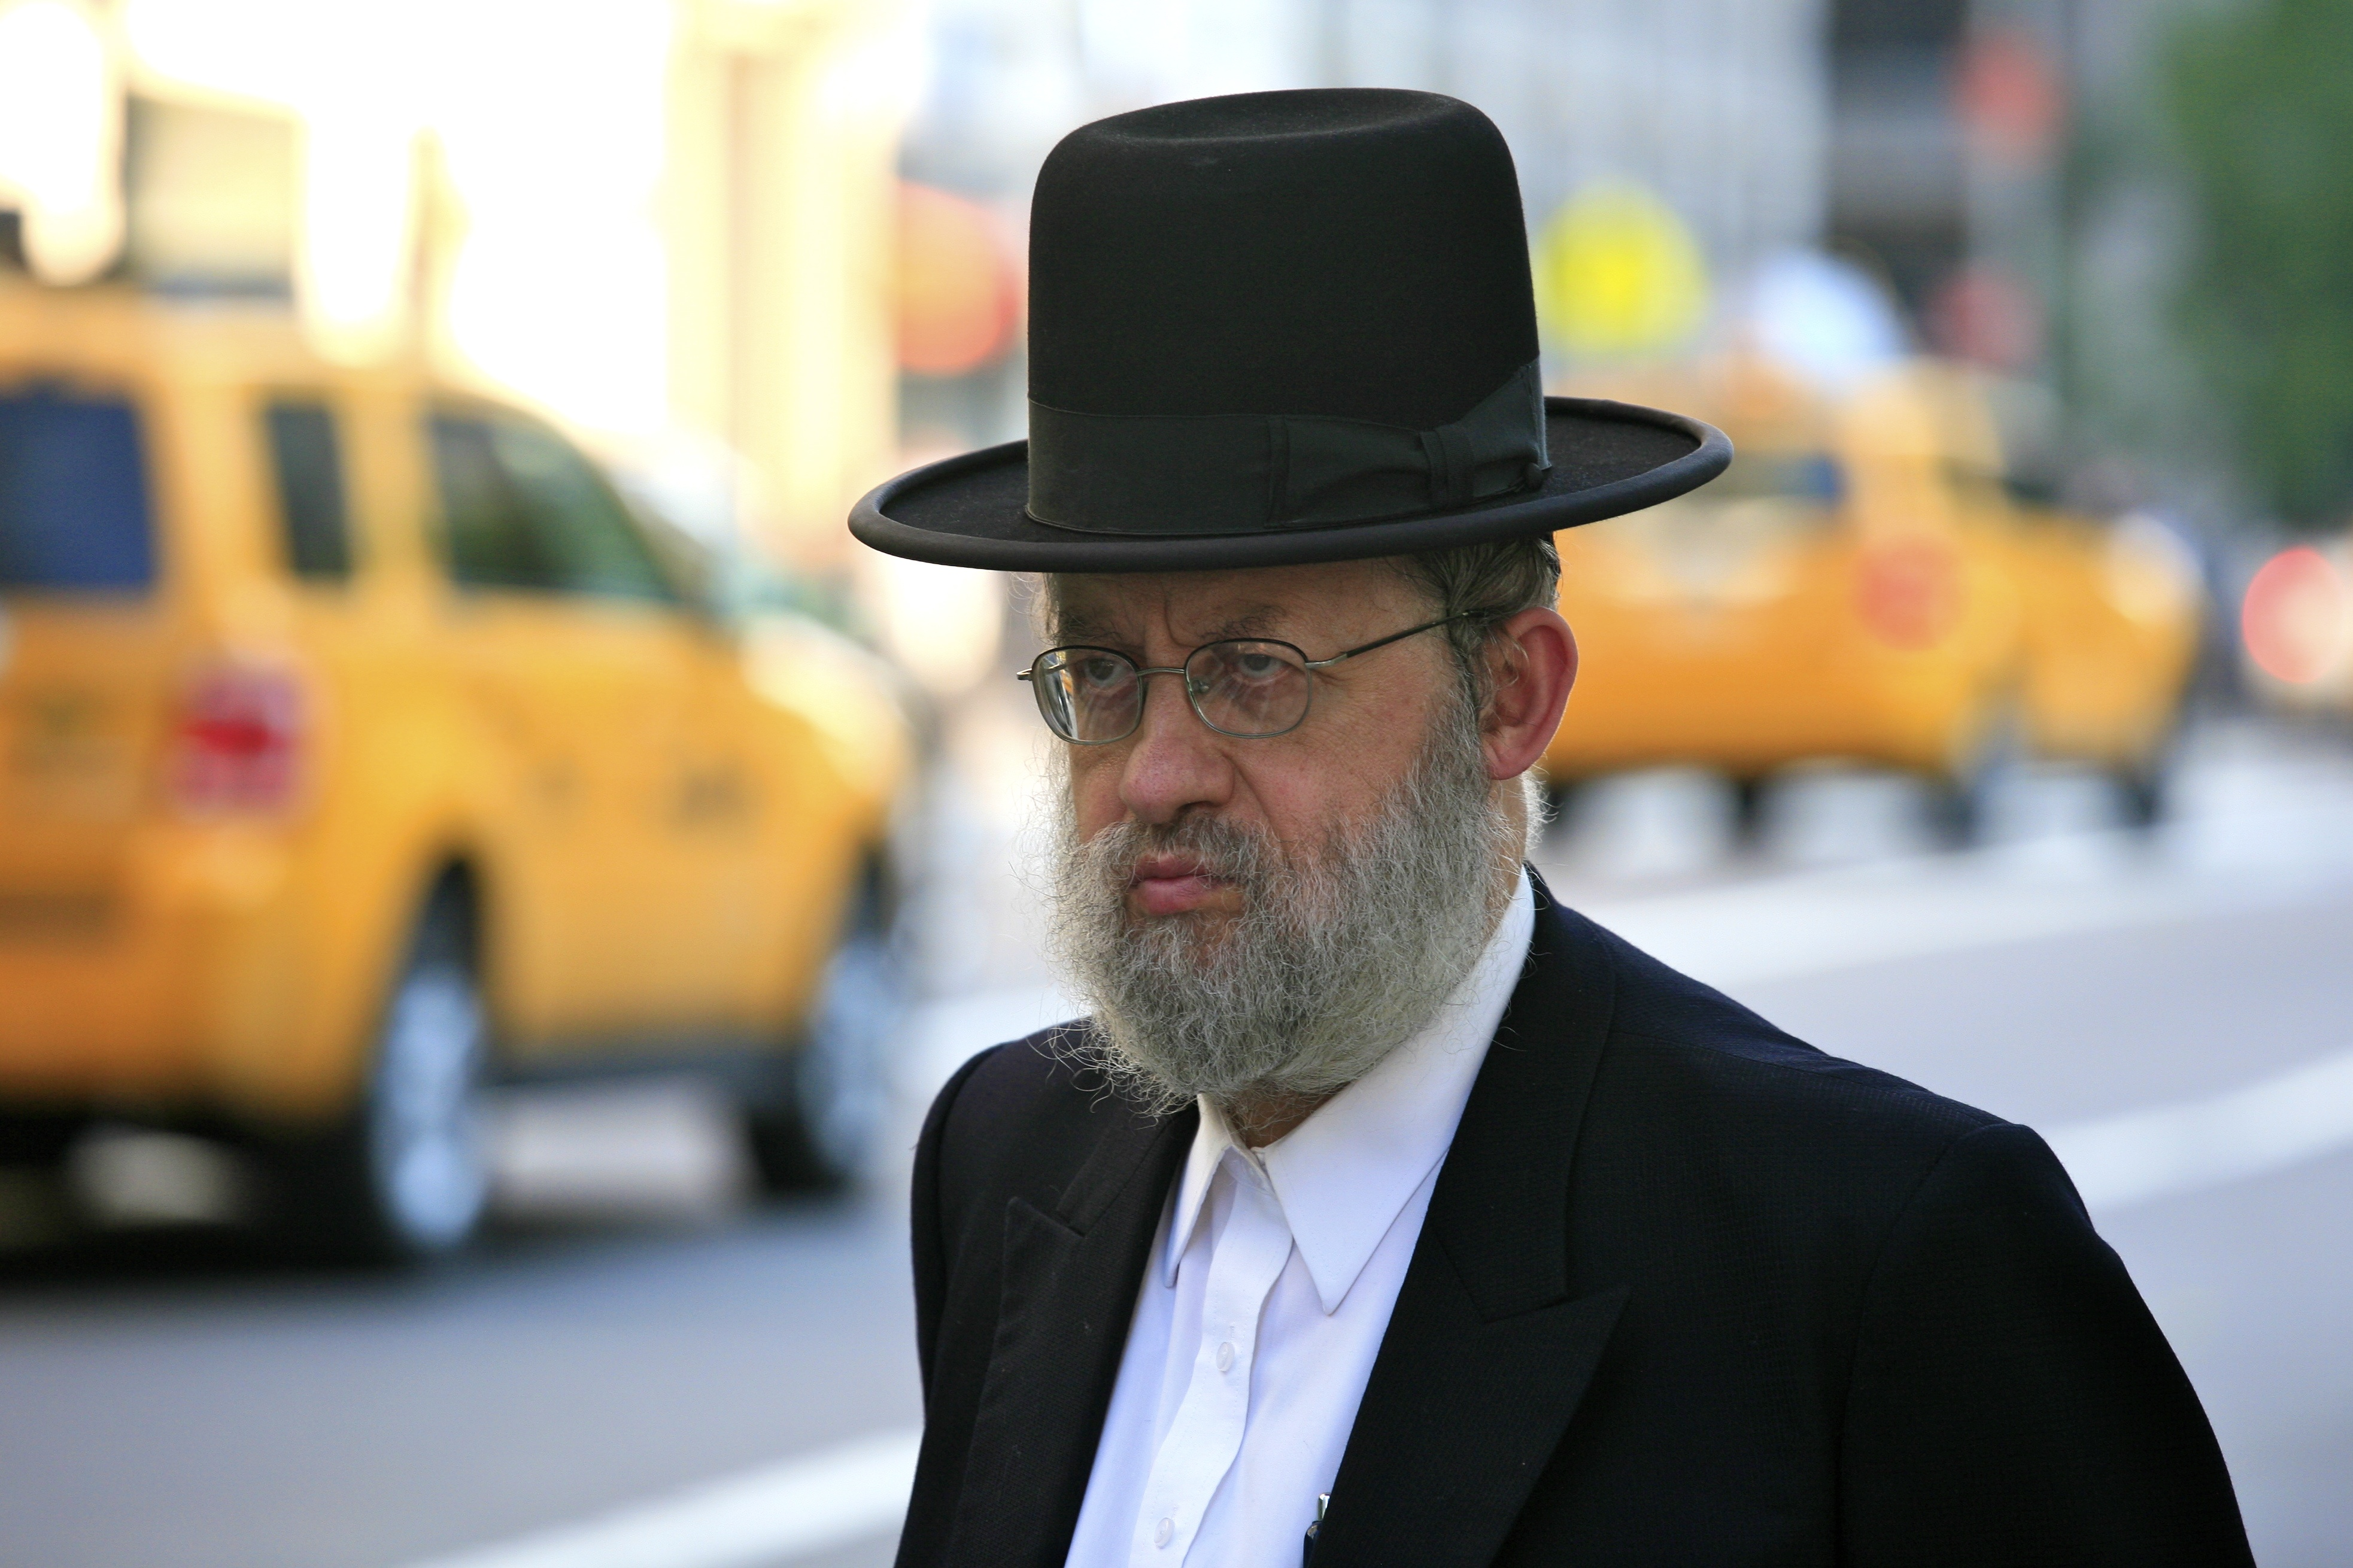 orthodox judaism Modern orthodox judaism (also modern orthodox or modern orthodoxy) is a movement within orthodox judaism that attempts to synthesize jewish values and the observance of jewish law, with the secular, modern world.